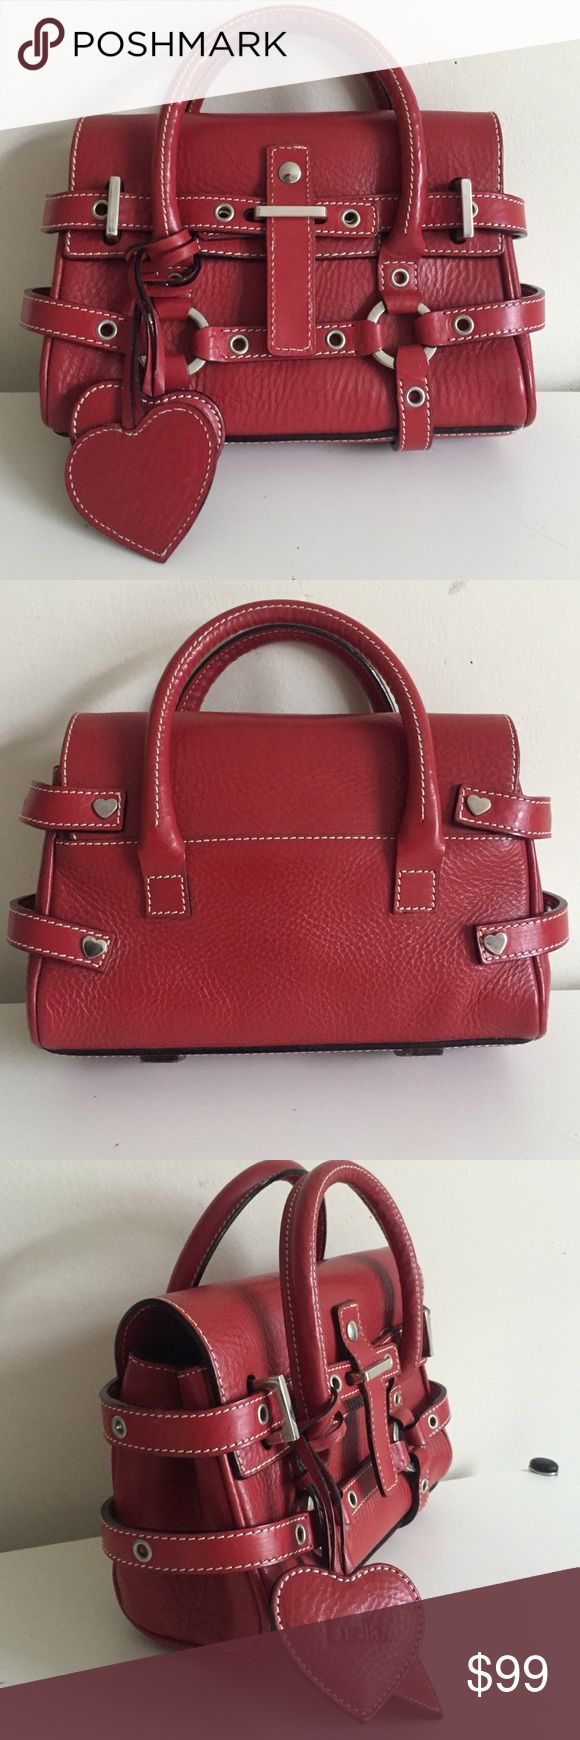 "Auth Luella Bartley Red Baby Giselle Gently used authentic Luella Bartley Baby Giselle in red leather / silver tone hardware / two Luella logo heart shaped charms in red leather / one interior zippered pocket / top flap closure secured with straps / no scuff marks / one minor scratch on the back (3/8"") / 9"" wide x 6"" high x 3.5"" deep (bottom) 2"" deep (top) / comes with care card and pink dust bag / please check my closet for Rebecca Minkoff bags and more / reasonable offers welcome Luella…"